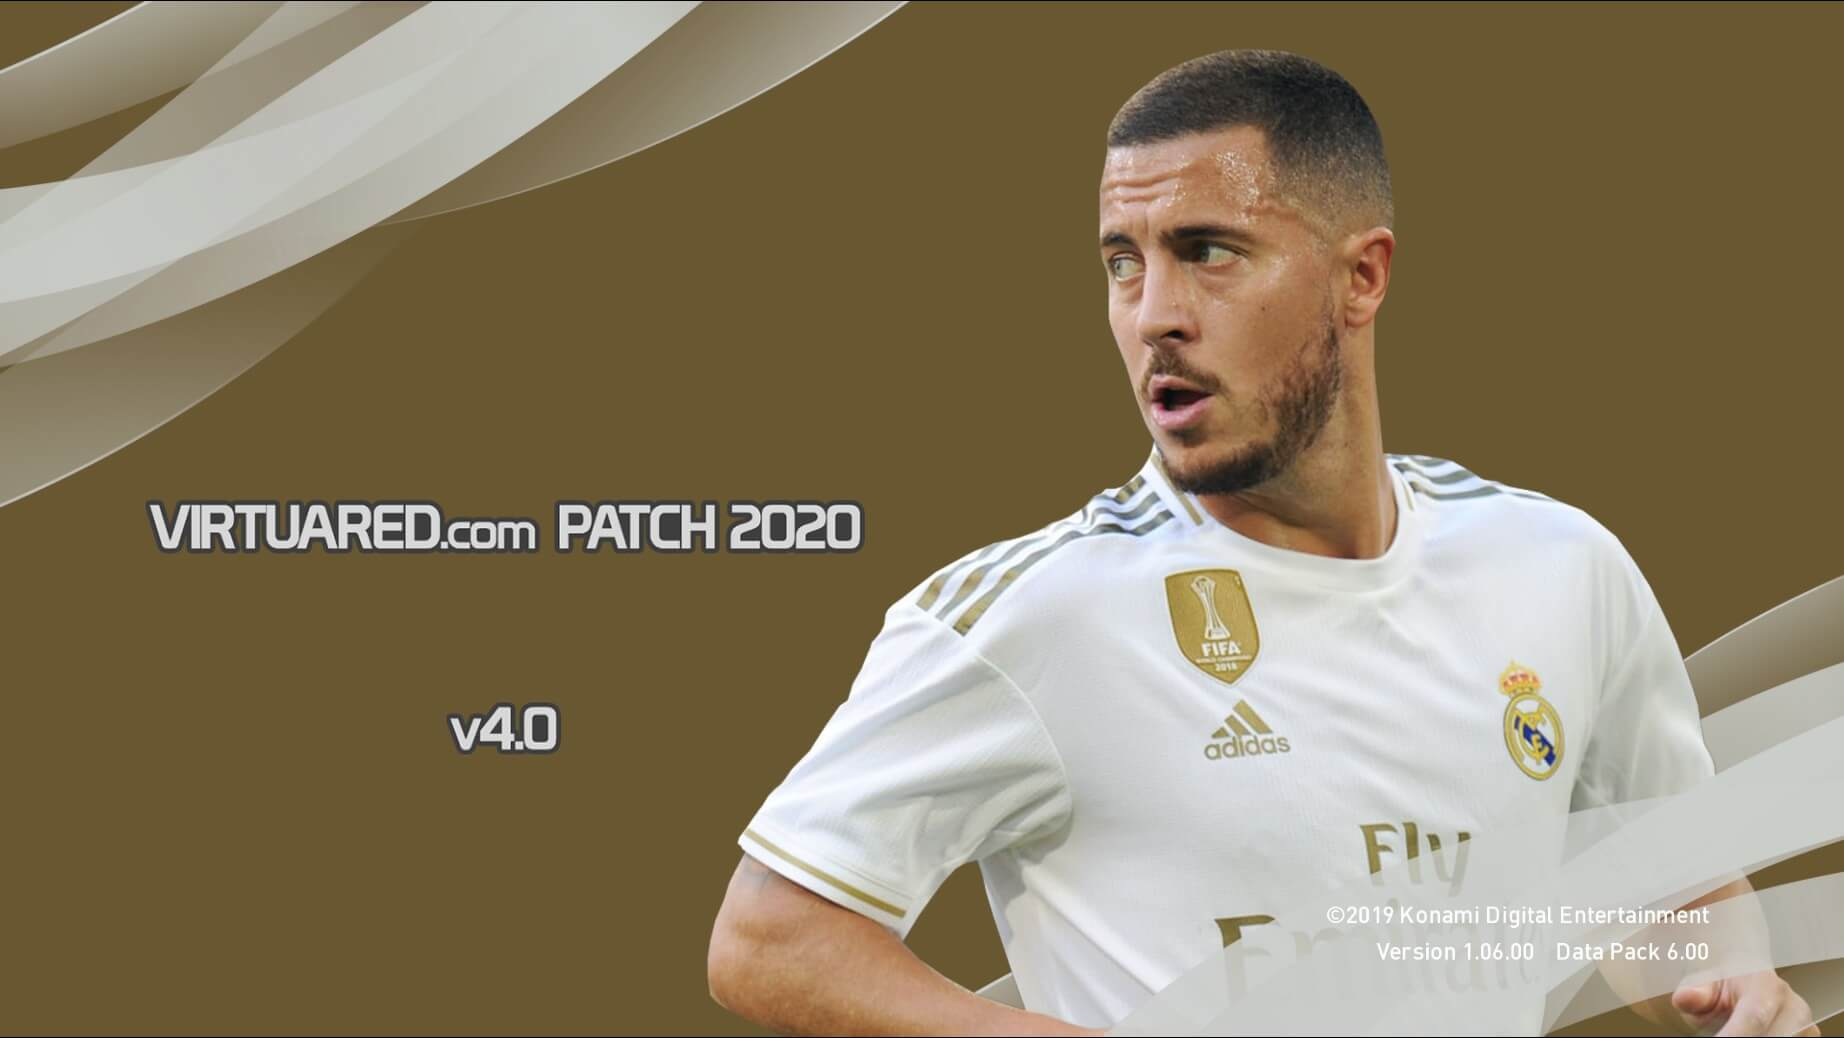 VirtuaRED.com Patch 2020 v4.0 ¡ya disponible!